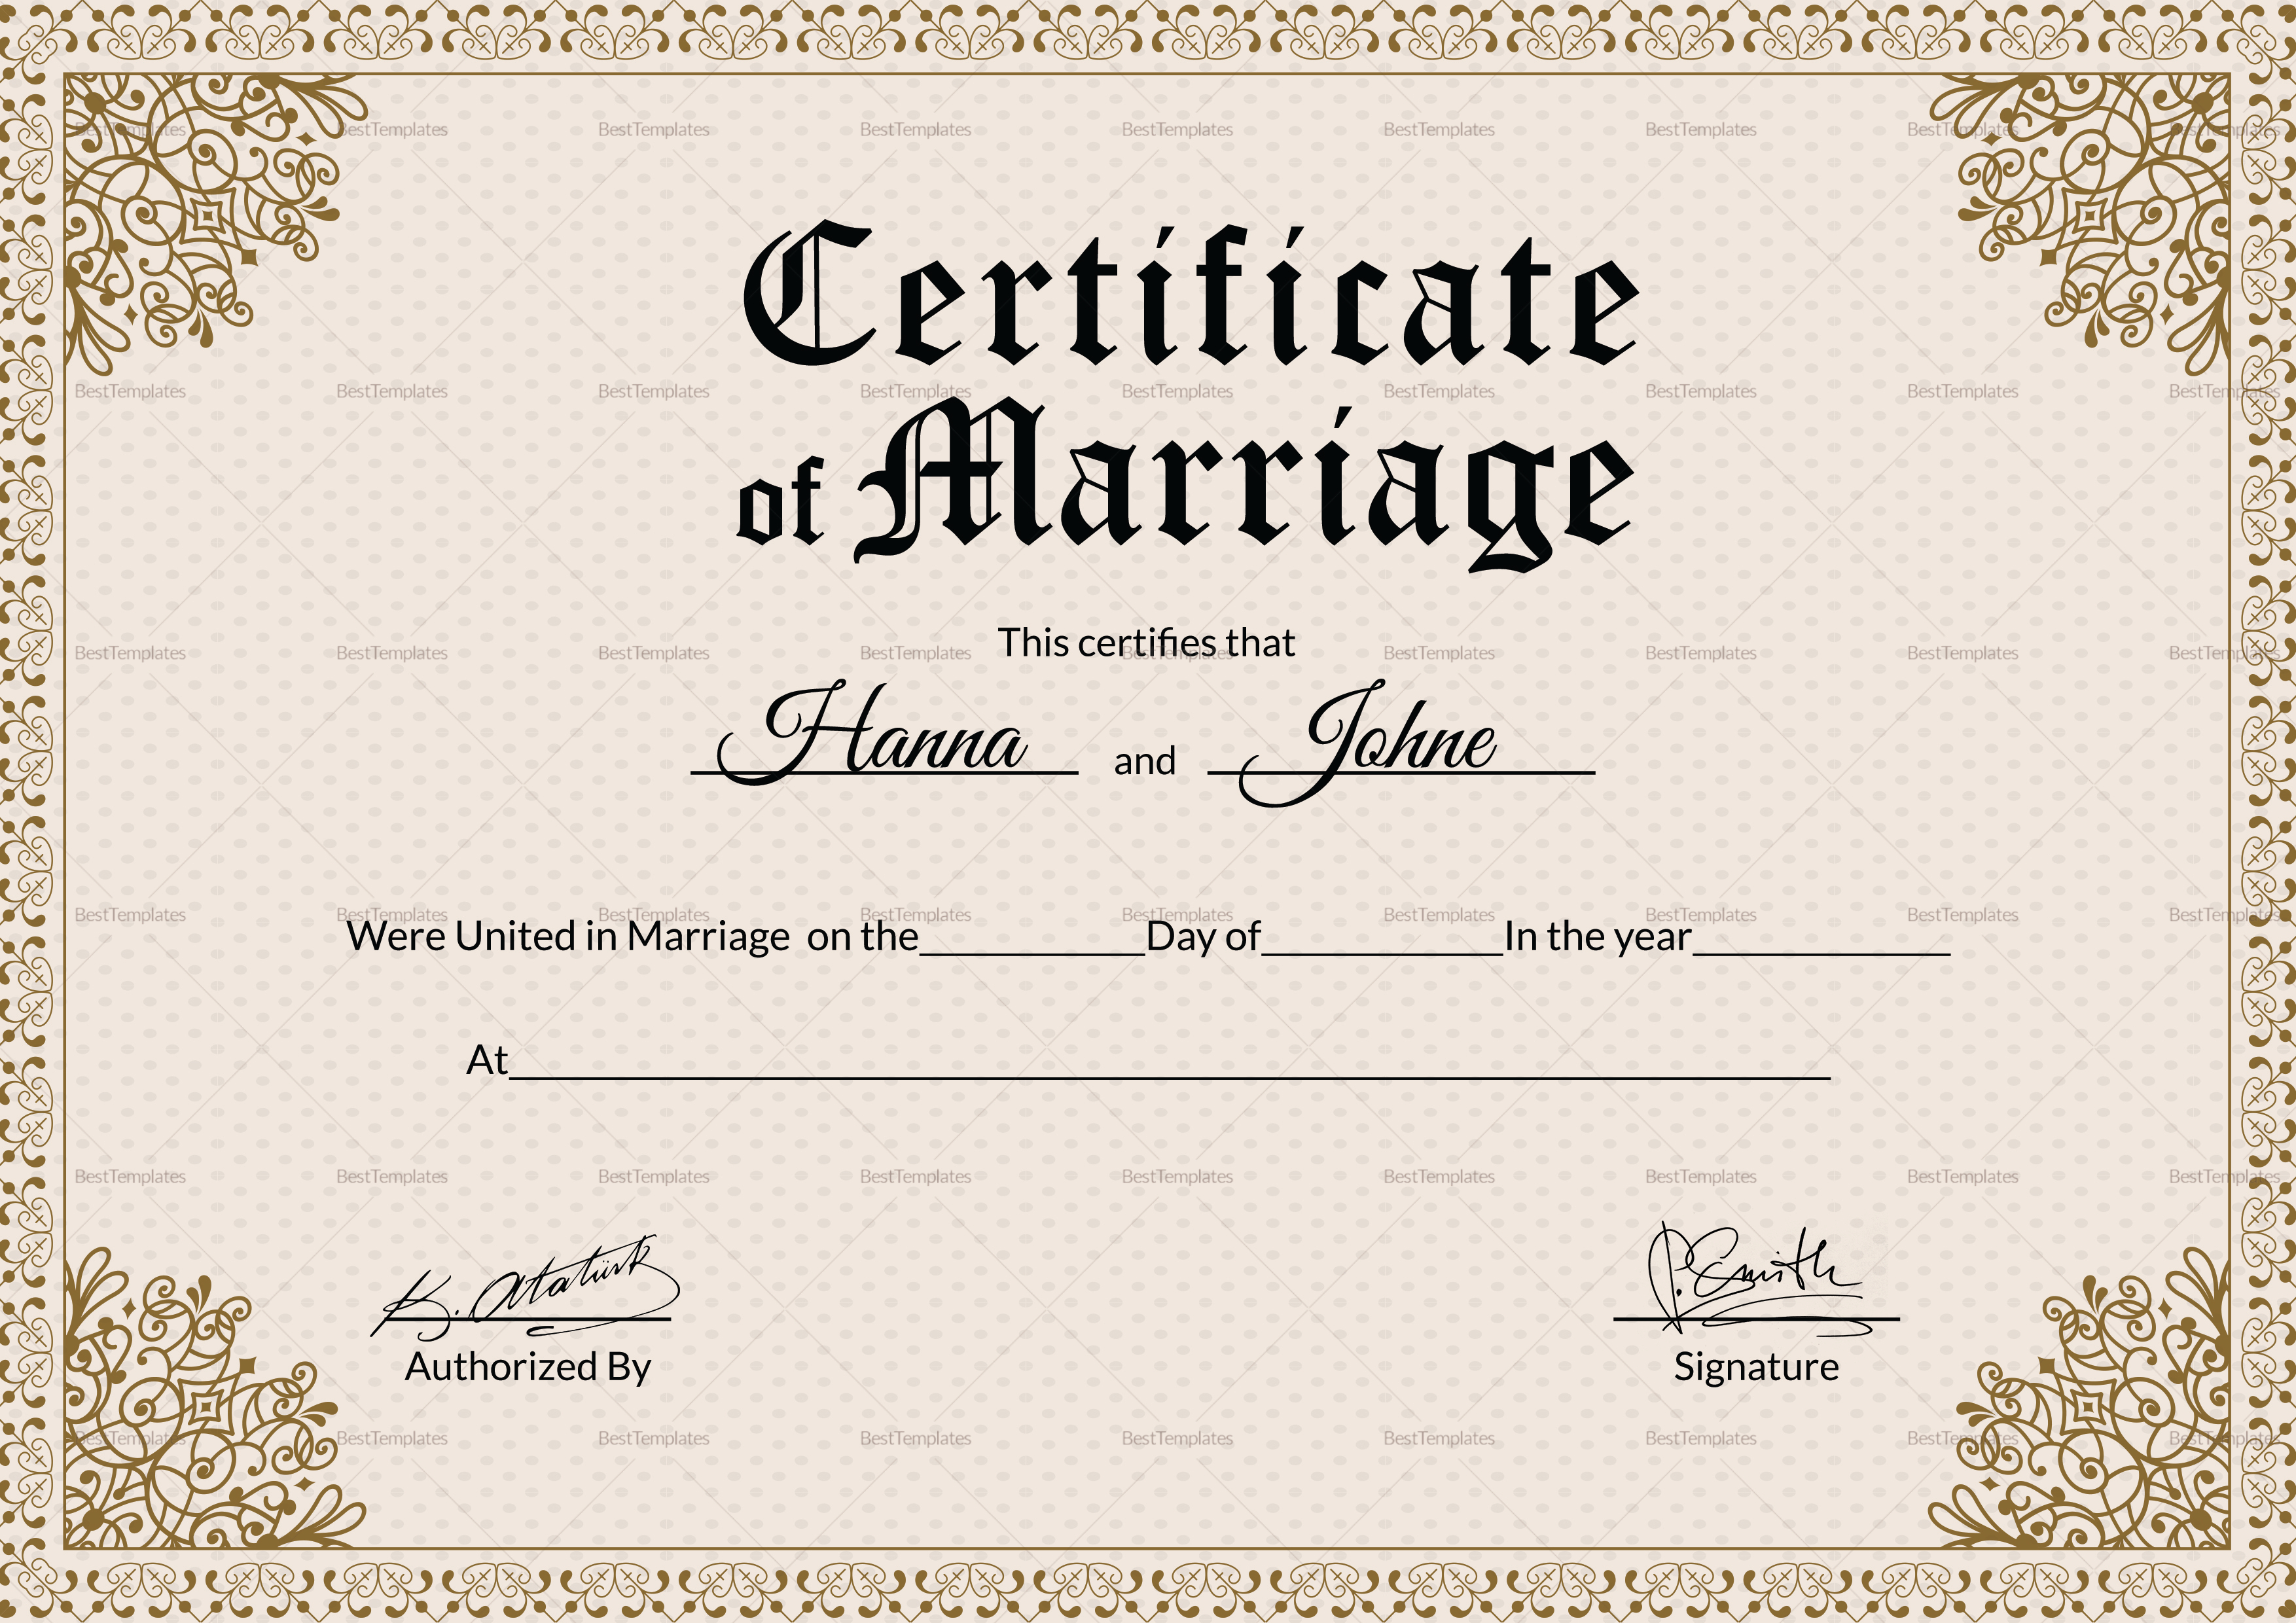 Formal Marriage Certificate Design Template In Psd Word: Keepsake Marriage Certificate Design Template In PSD, Word